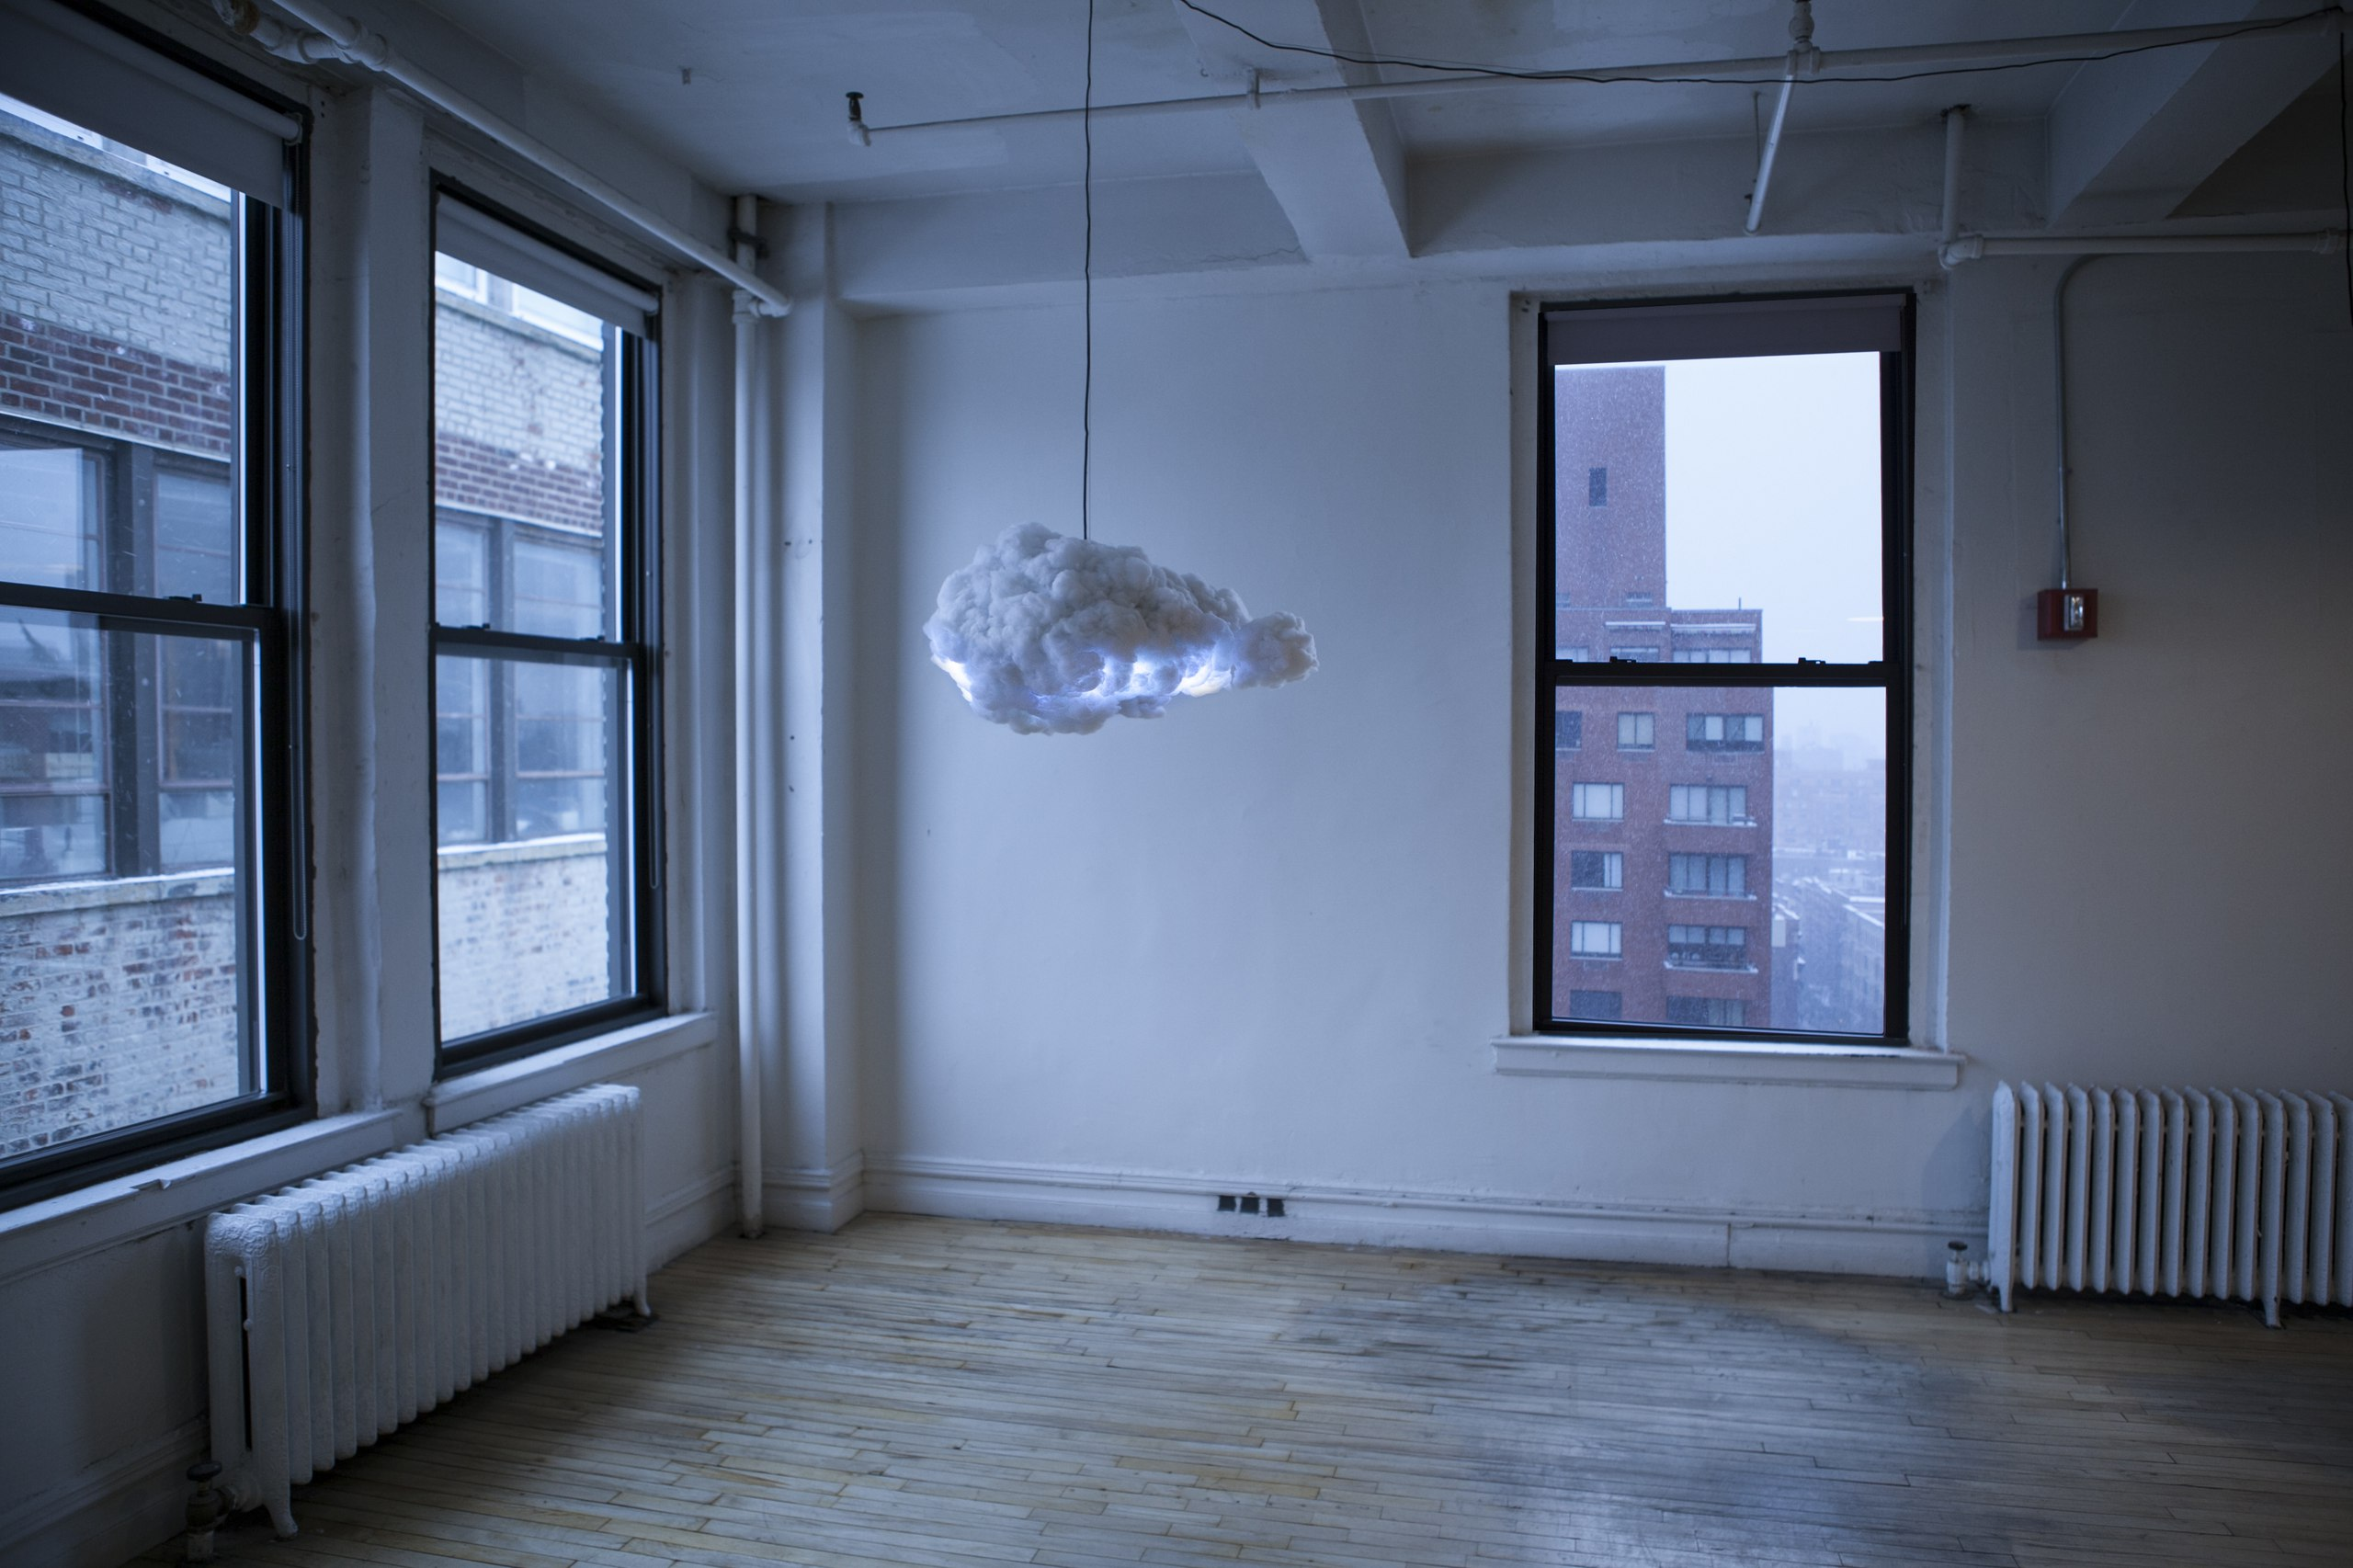 storm cloud lamp, internet of things & design, proyectos iot barcelona, diseñadores iot, diseño de interfaces